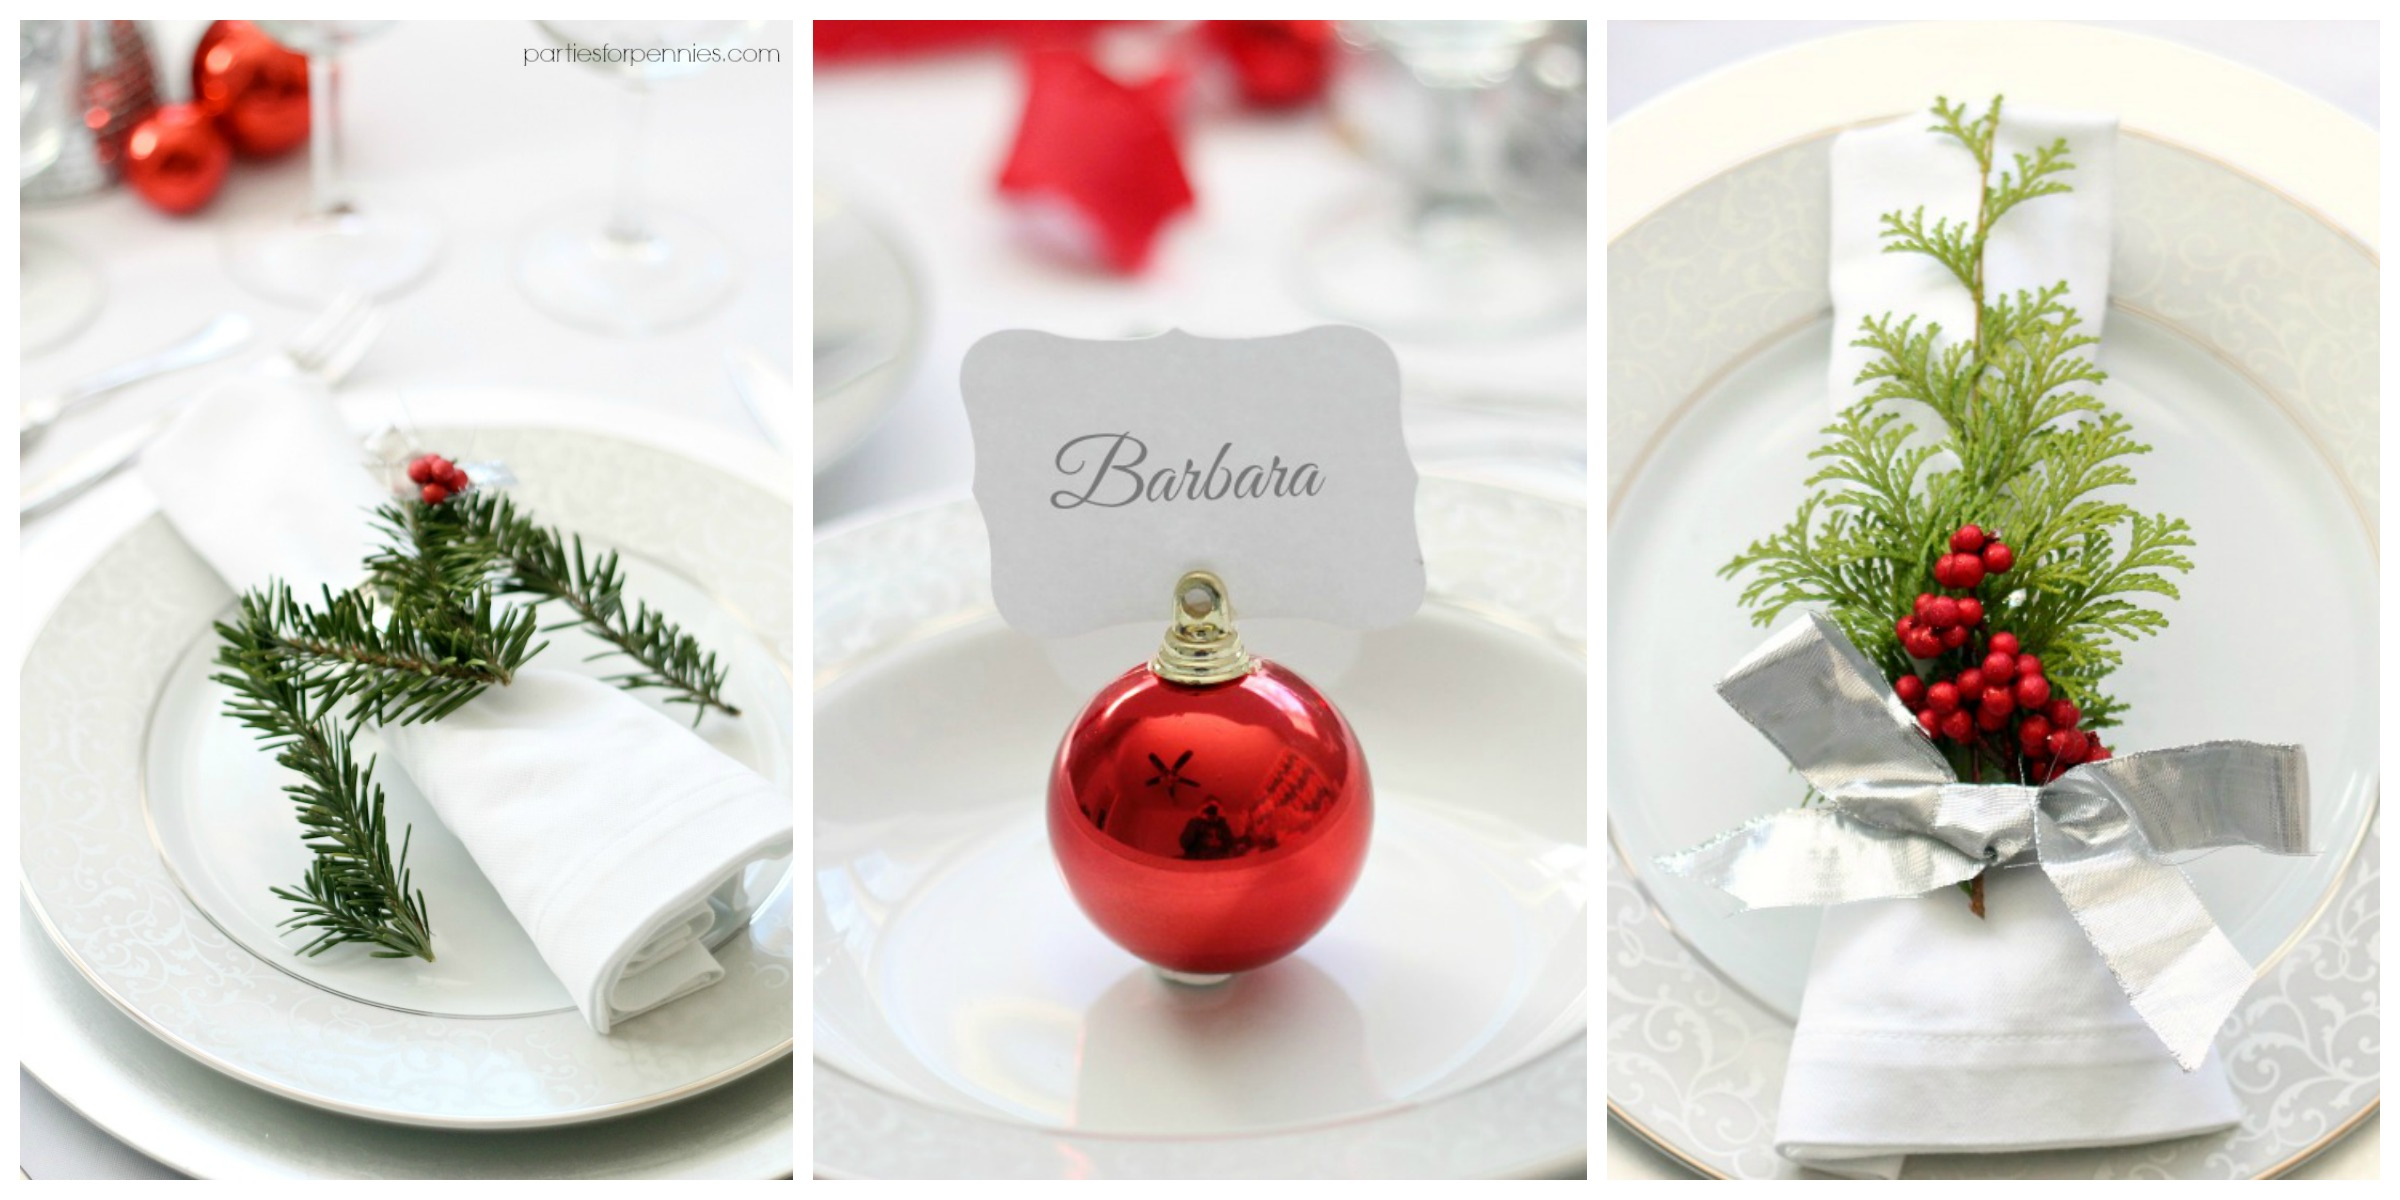 Formal Place Setting Guide Parties For Pennies